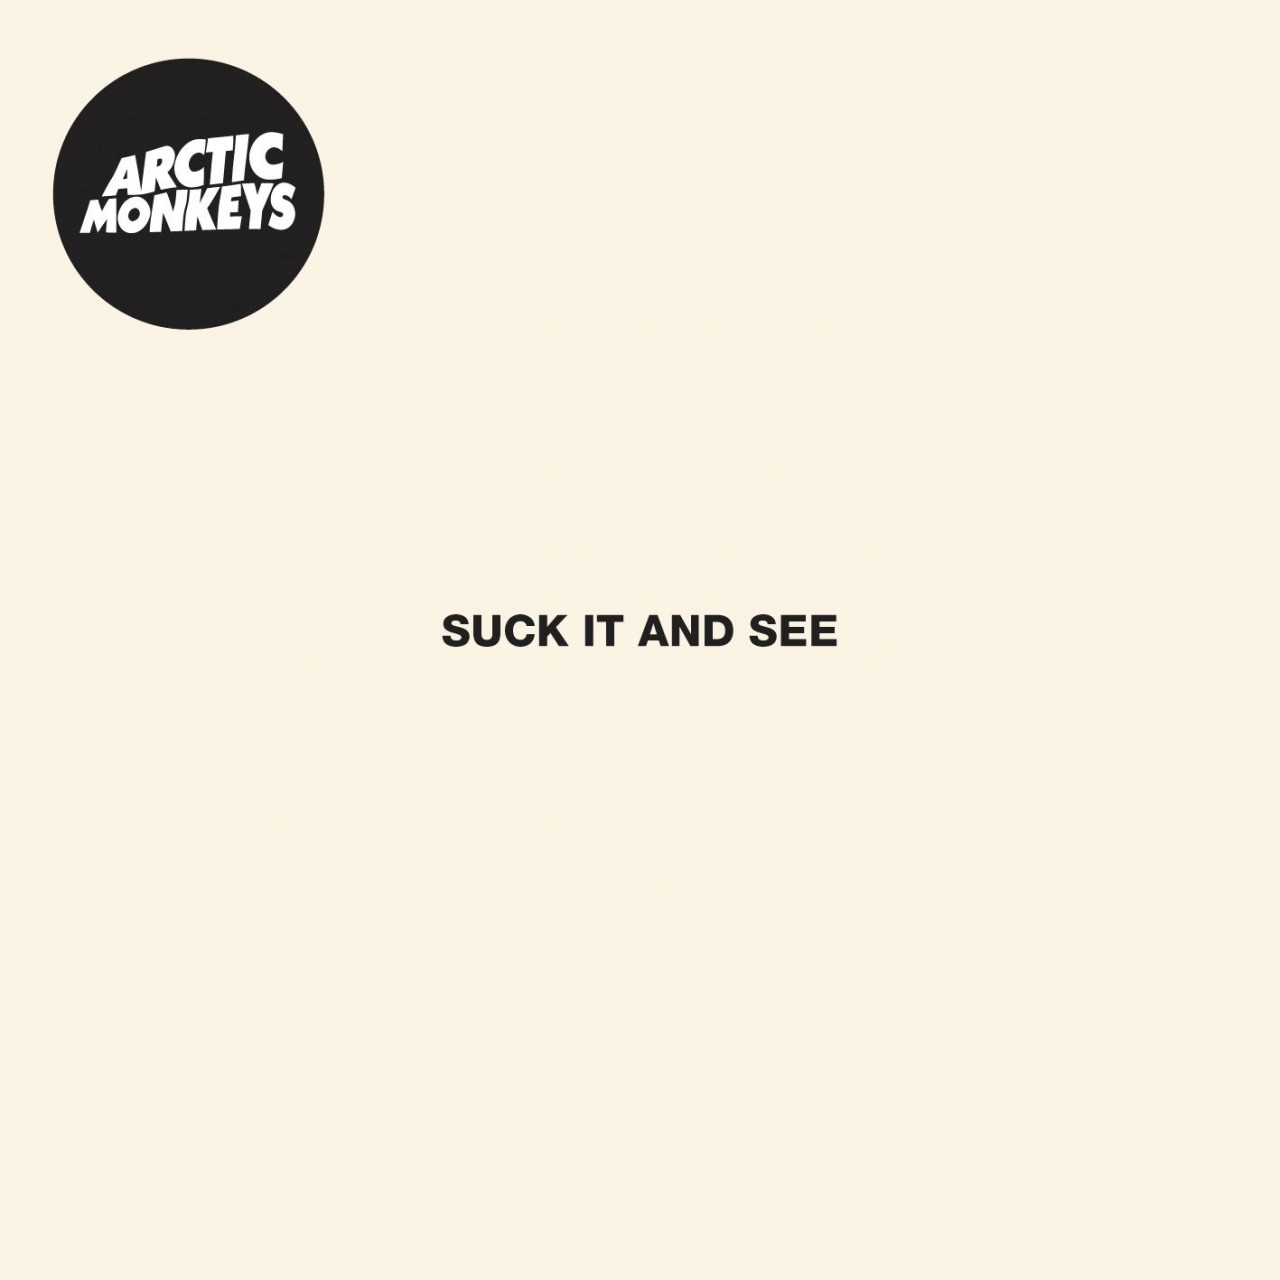 jaquettes2/arctic-monkeys-suck-it-and-see.jpg